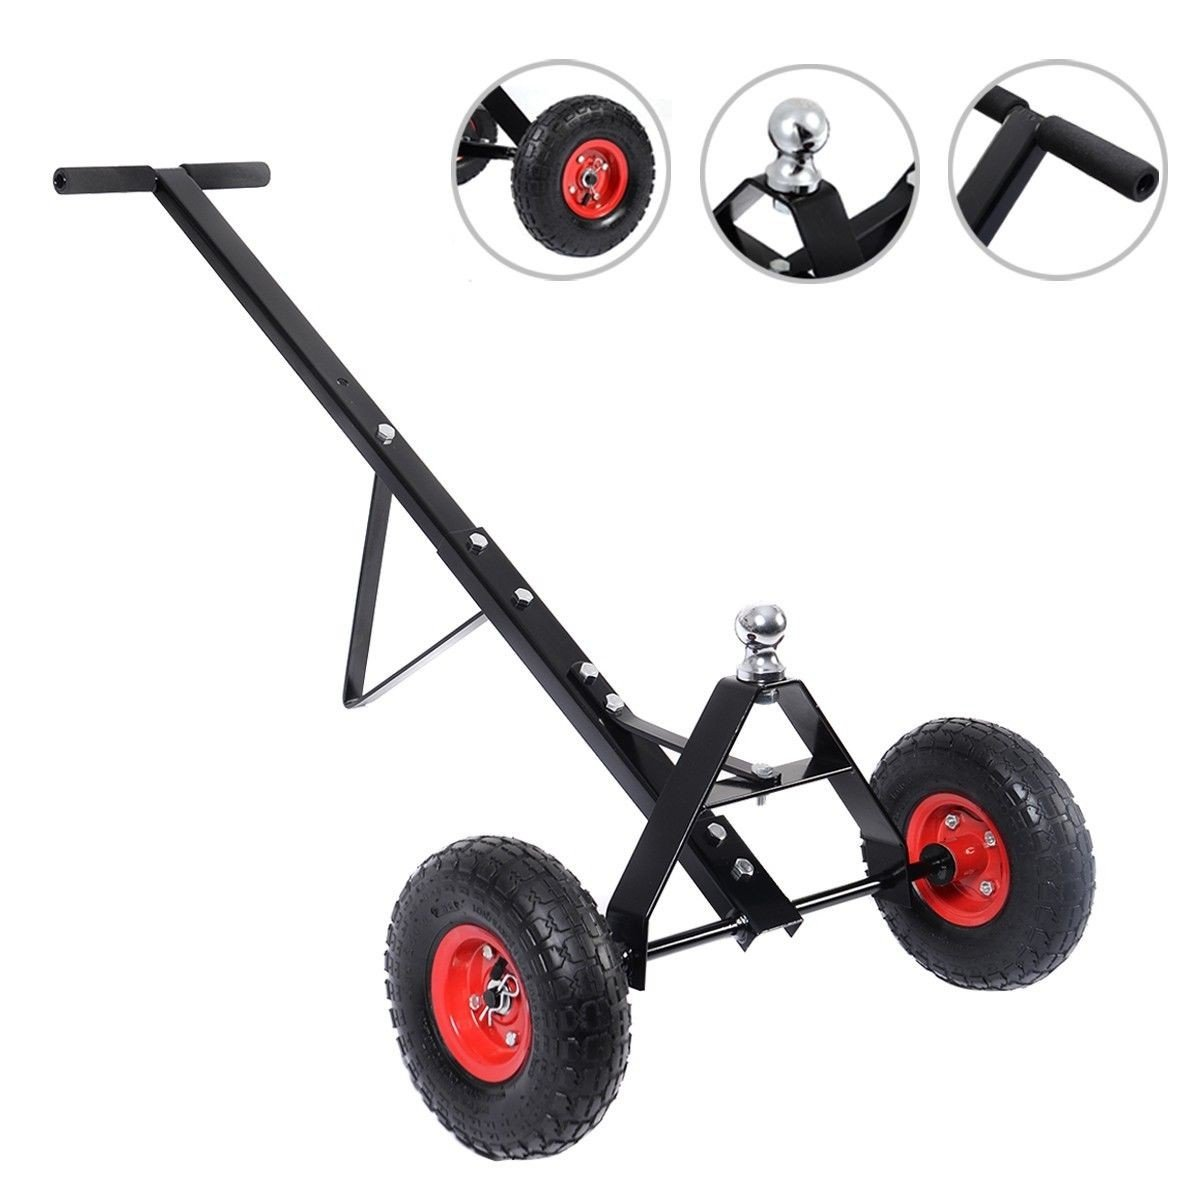 600lb HEAVY DUTY Utility Trailer Mover Hitch Boat Jet Ski Camper Hand Dolly New - By Choice Products Unknown